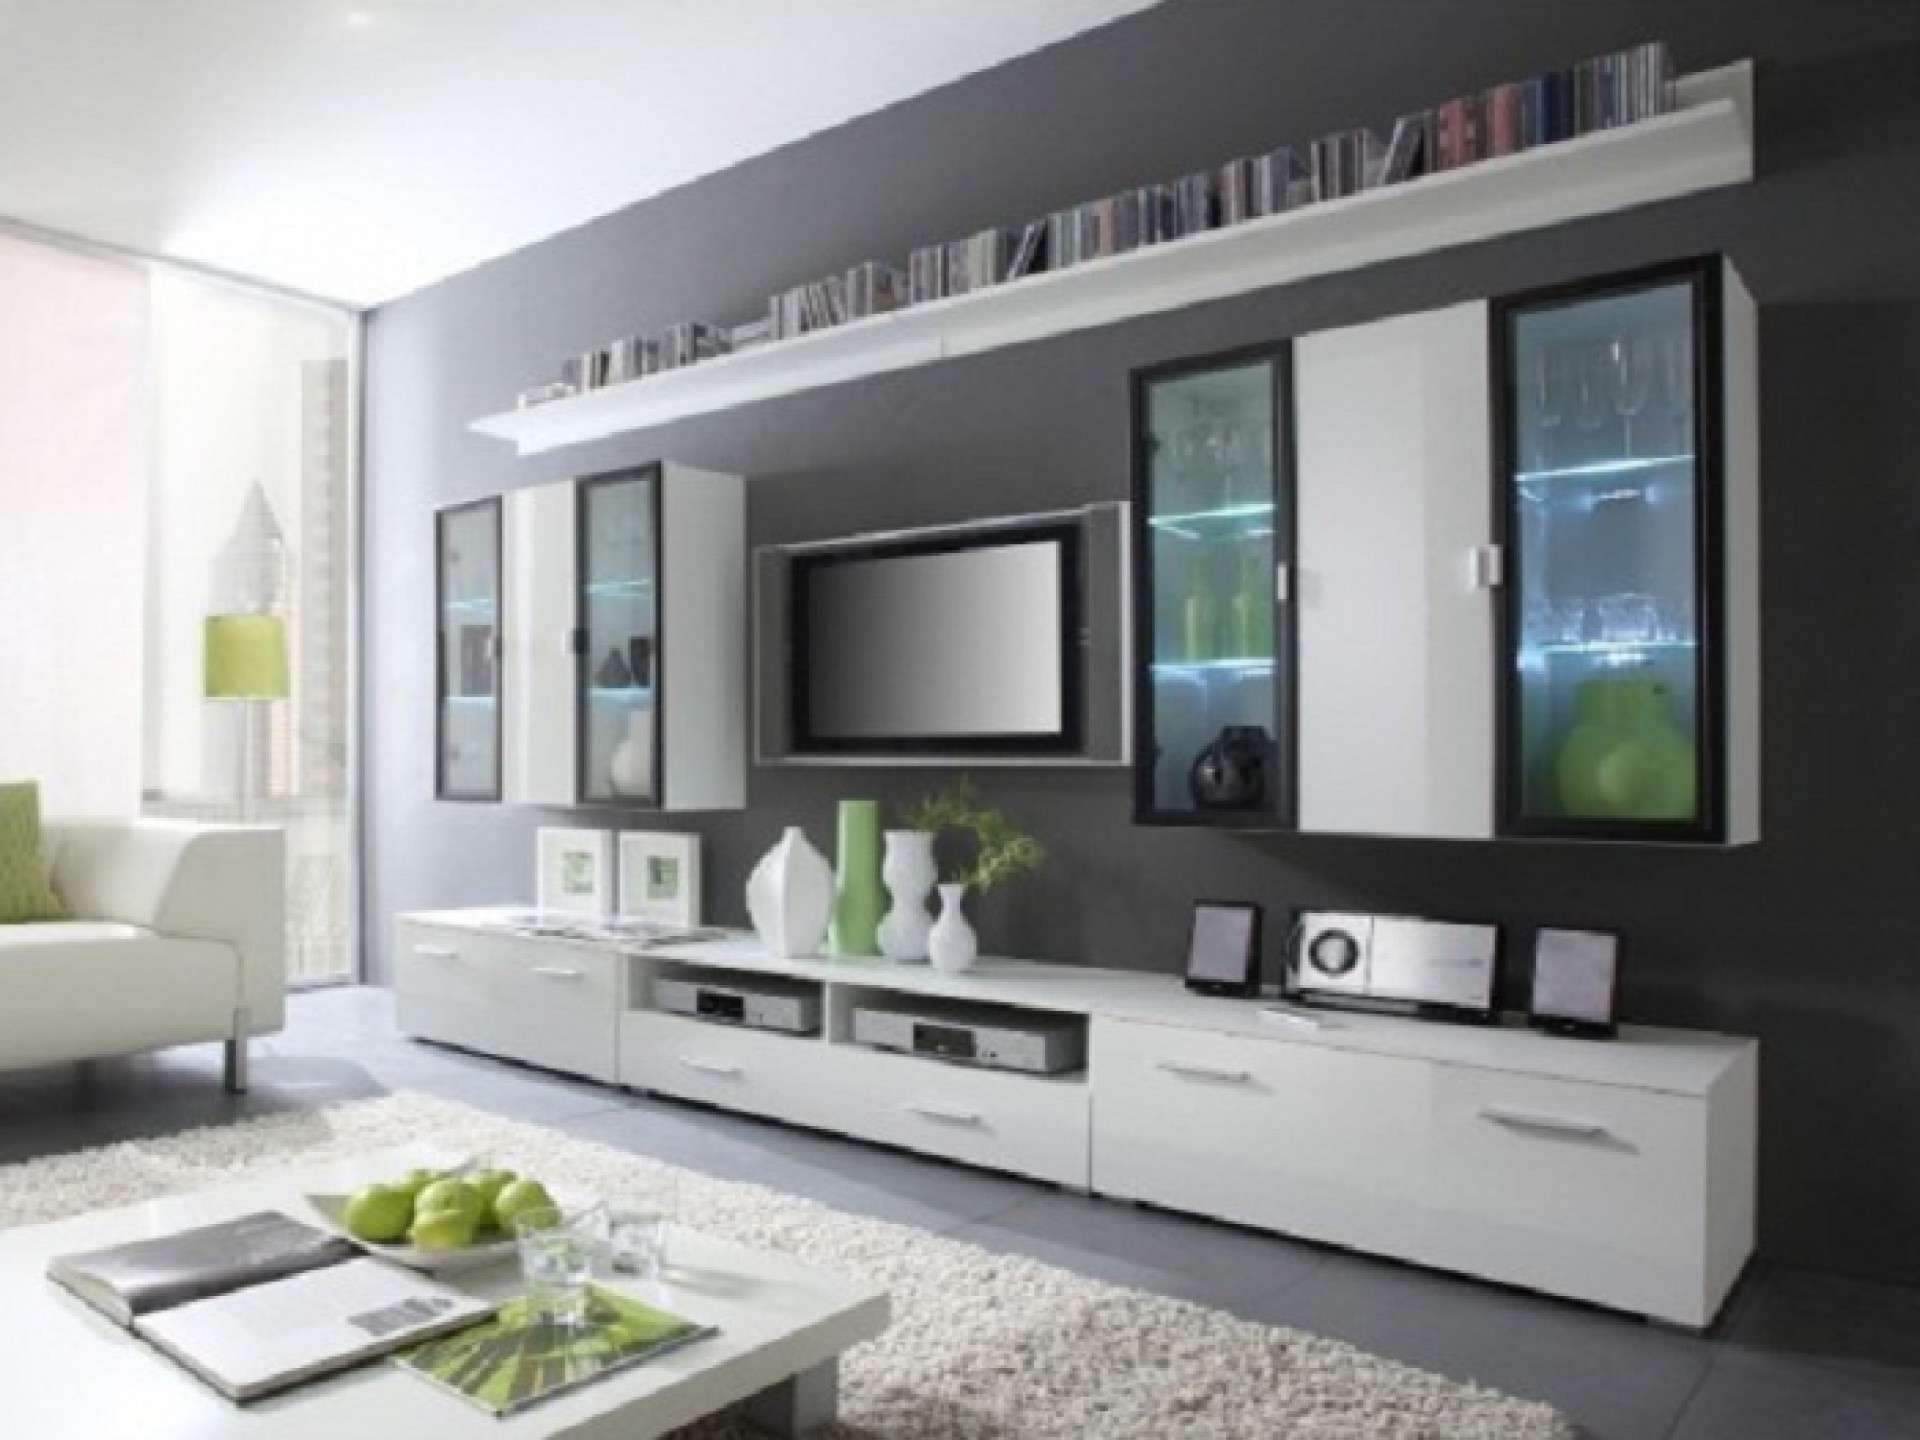 Furniture To Go Under Wall Mounted Tv | Roselawnlutheran For Wall Mounted Under Tv Cabinets (View 19 of 20)